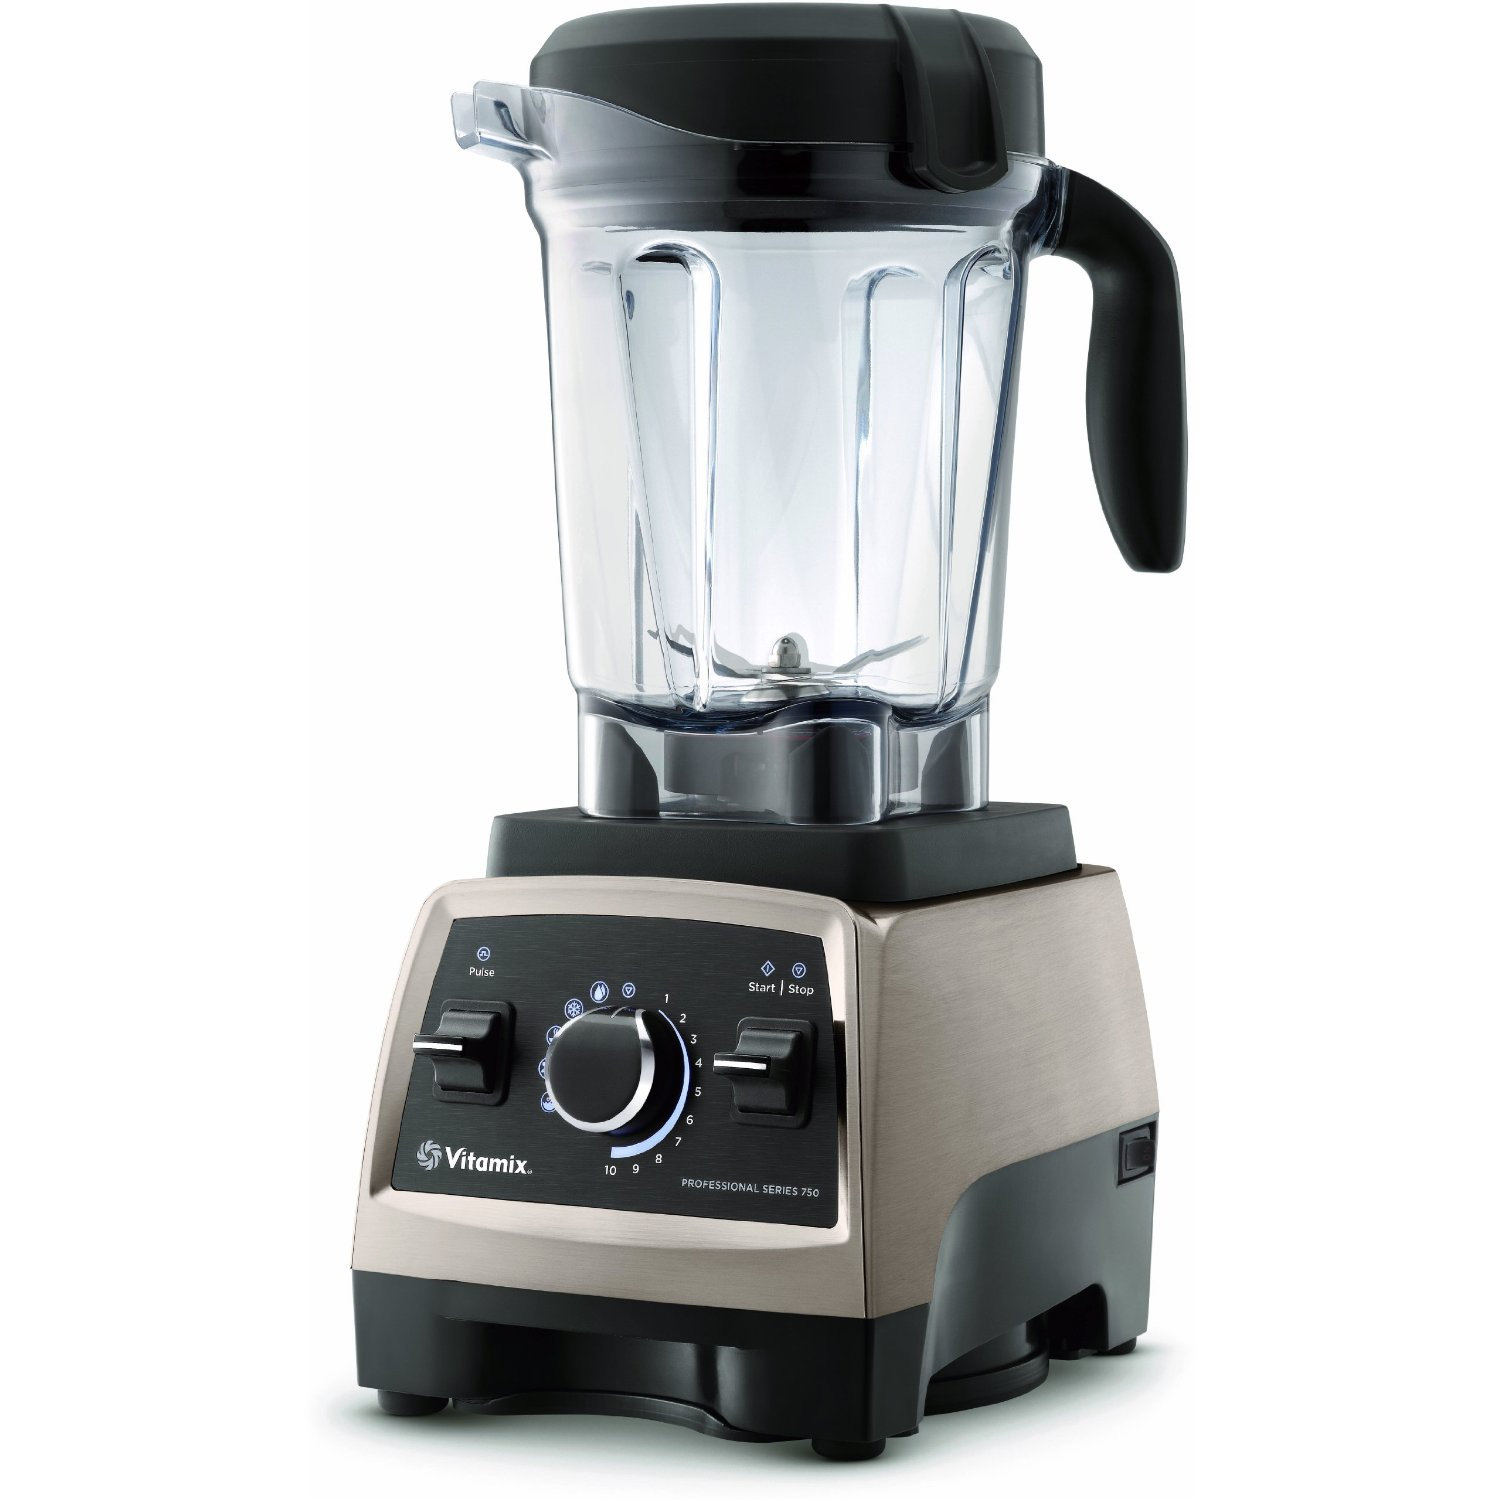 Countertop Blender : Top 10 best countertop blenders reviews